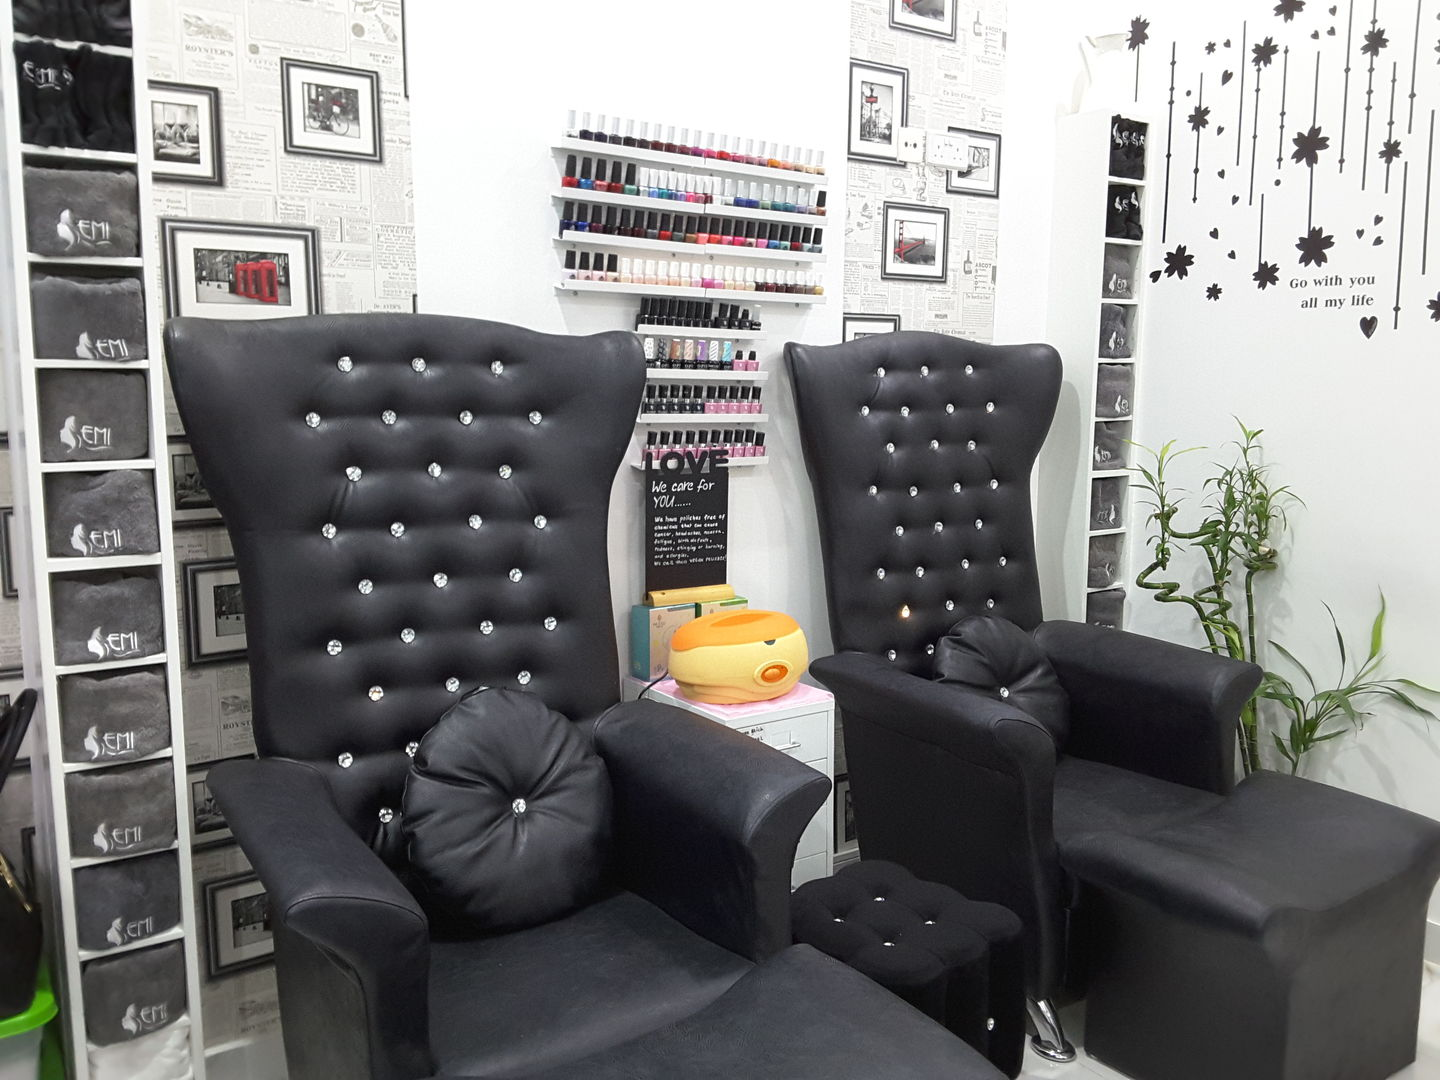 HiDubai-business-emi-beauty-saloon-beauty-wellness-health-beauty-salons-al-barsha-1-dubai-2